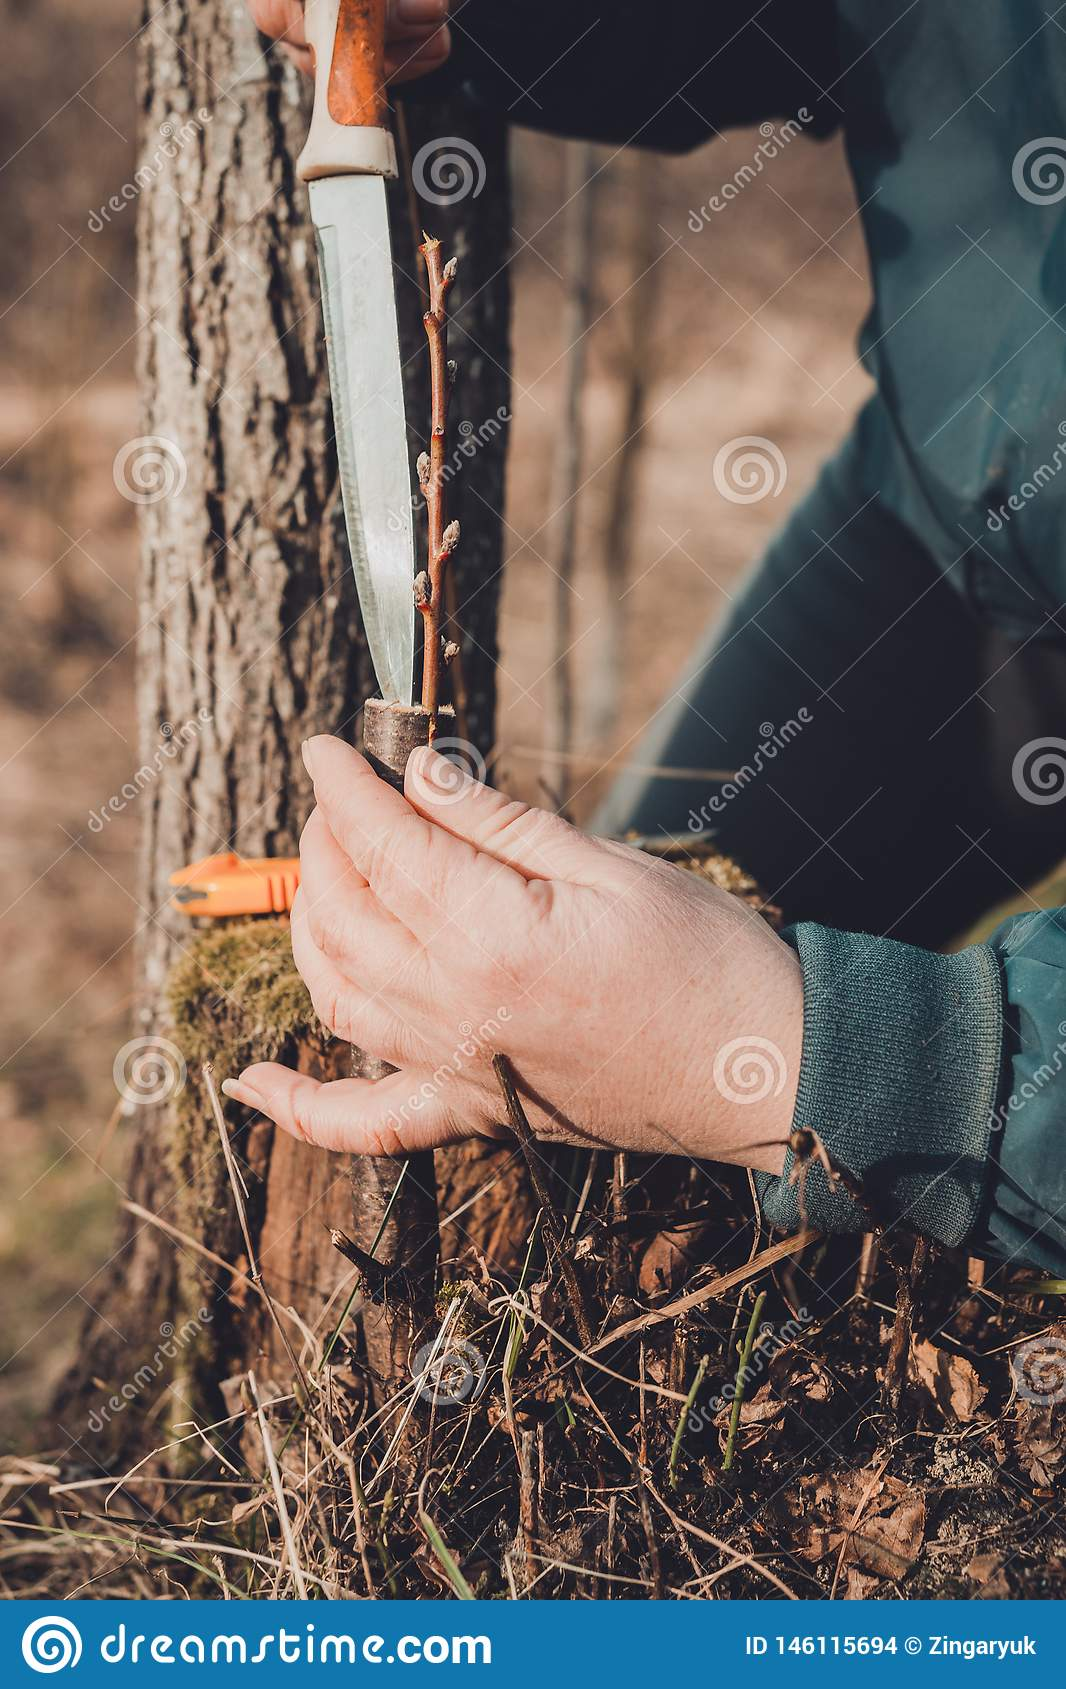 A woman makes a fruit tree in the garden and attaches a young twig